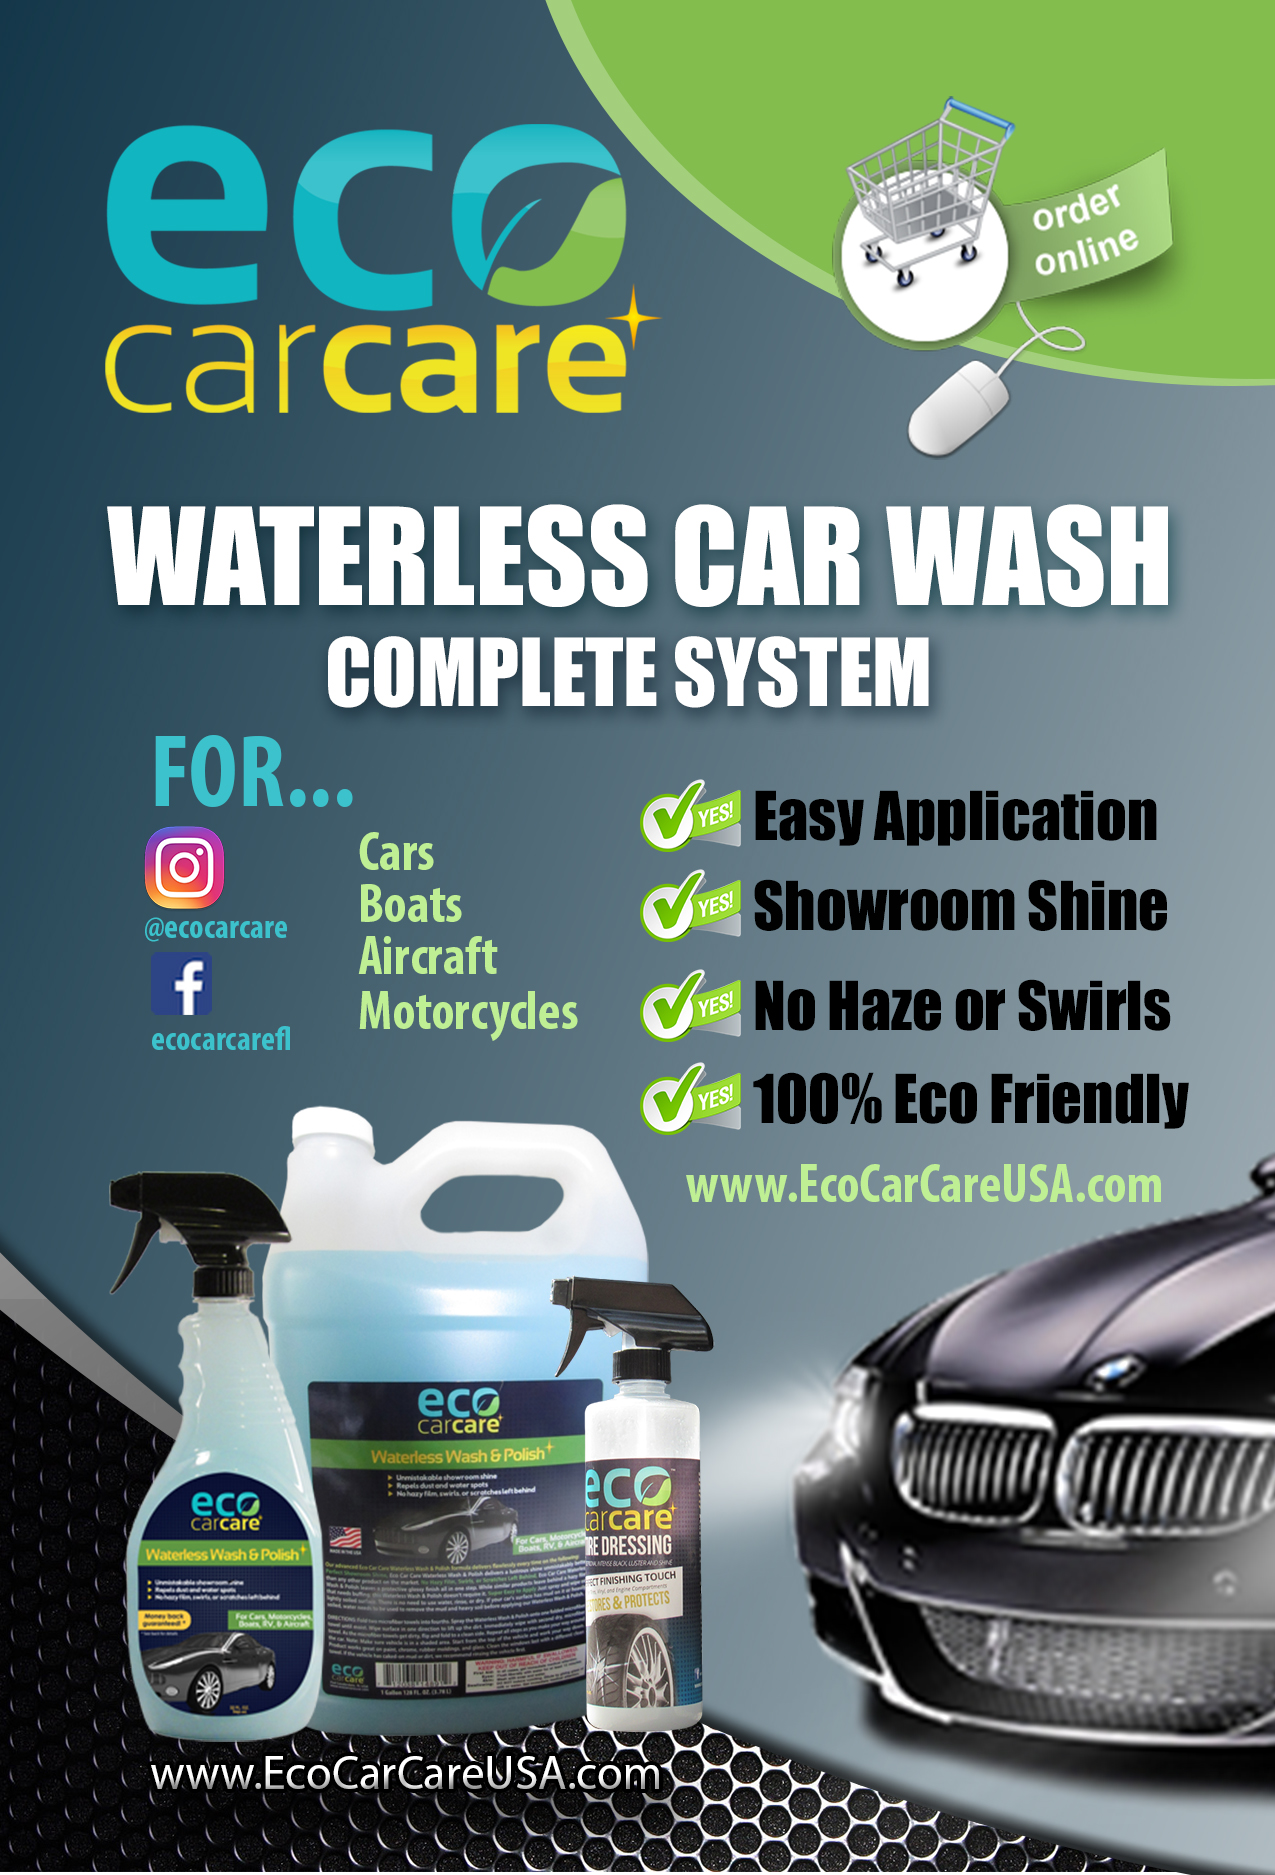 Mobile Waterless Car Wash Services